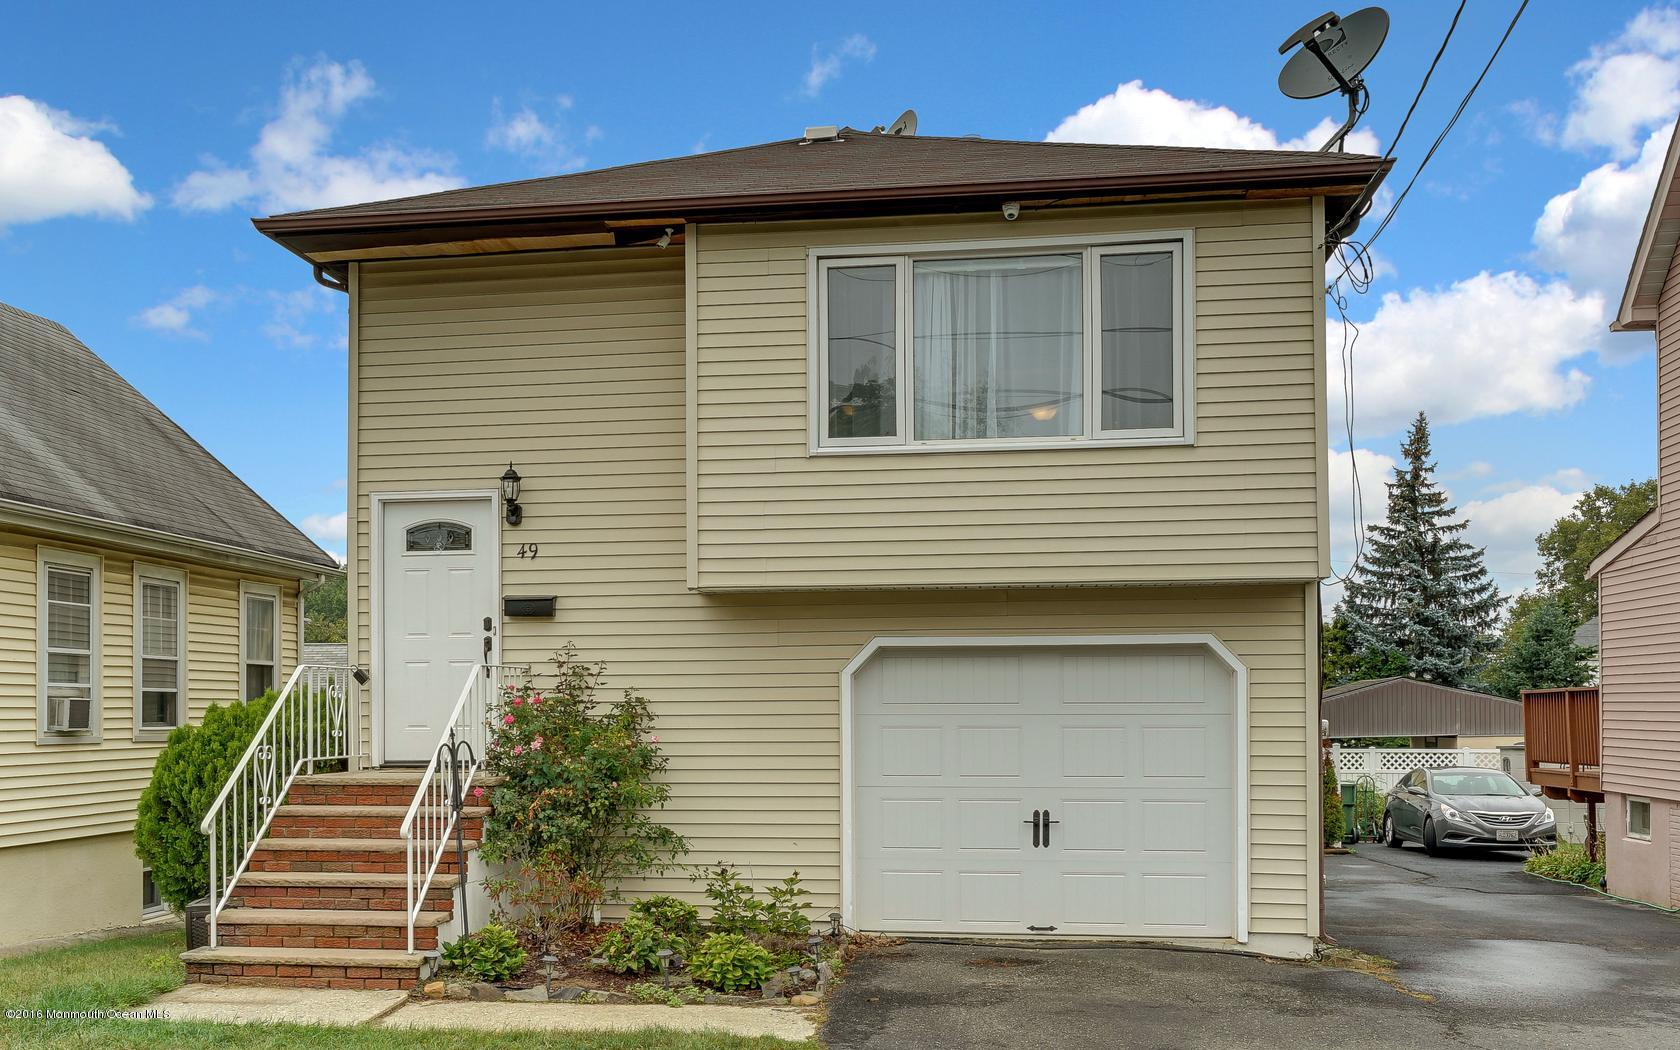 Photo of home for sale at 49 Hart Street Street, Sayreville NJ